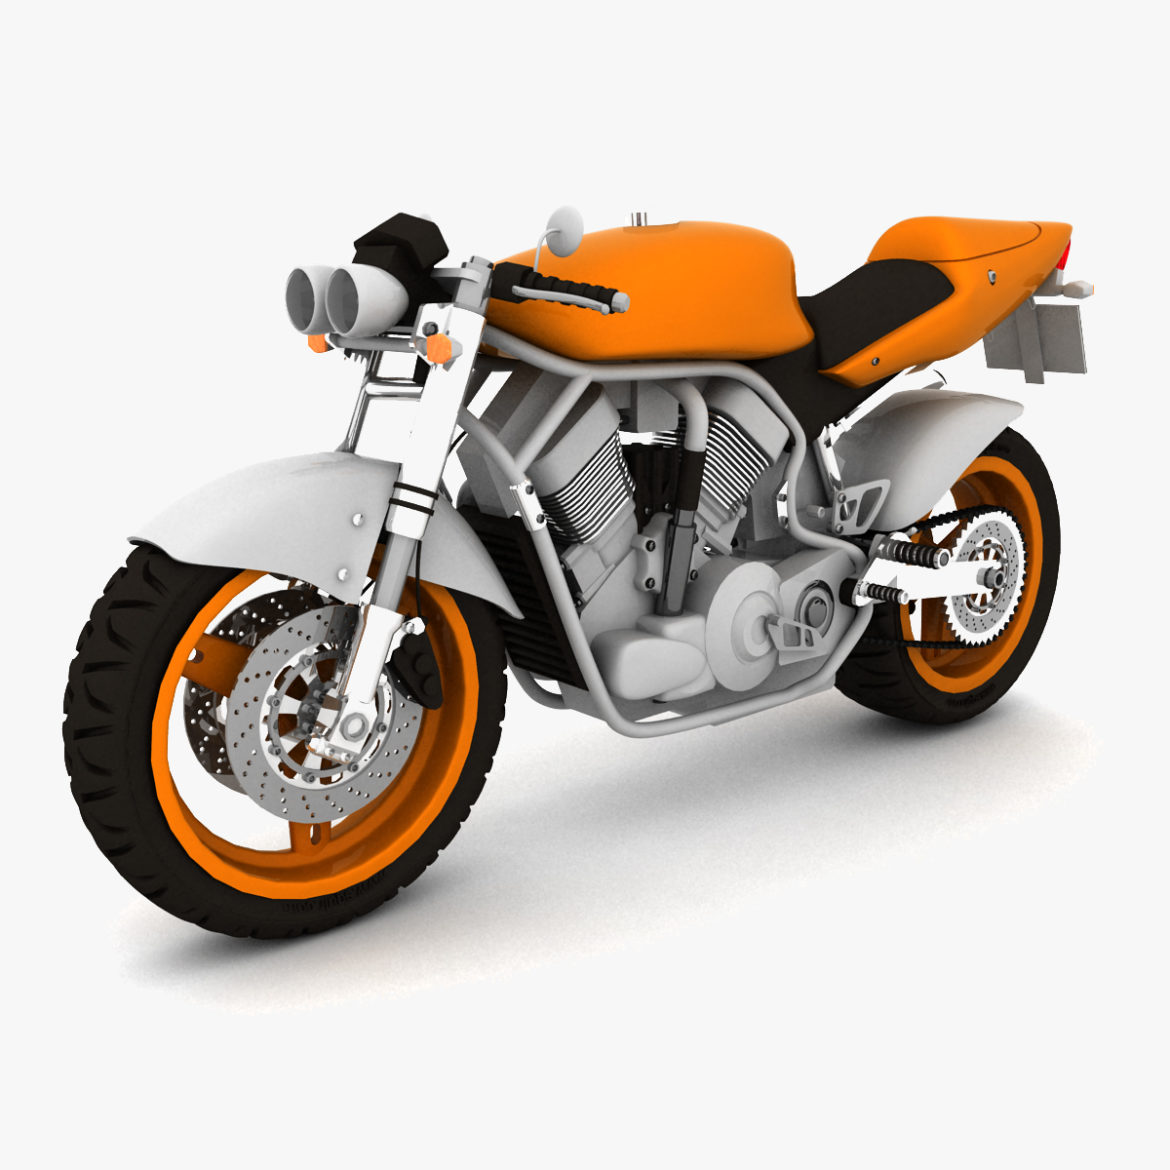 suzuki street fighter motorcycle 3d model 3ds max fbx obj 293868